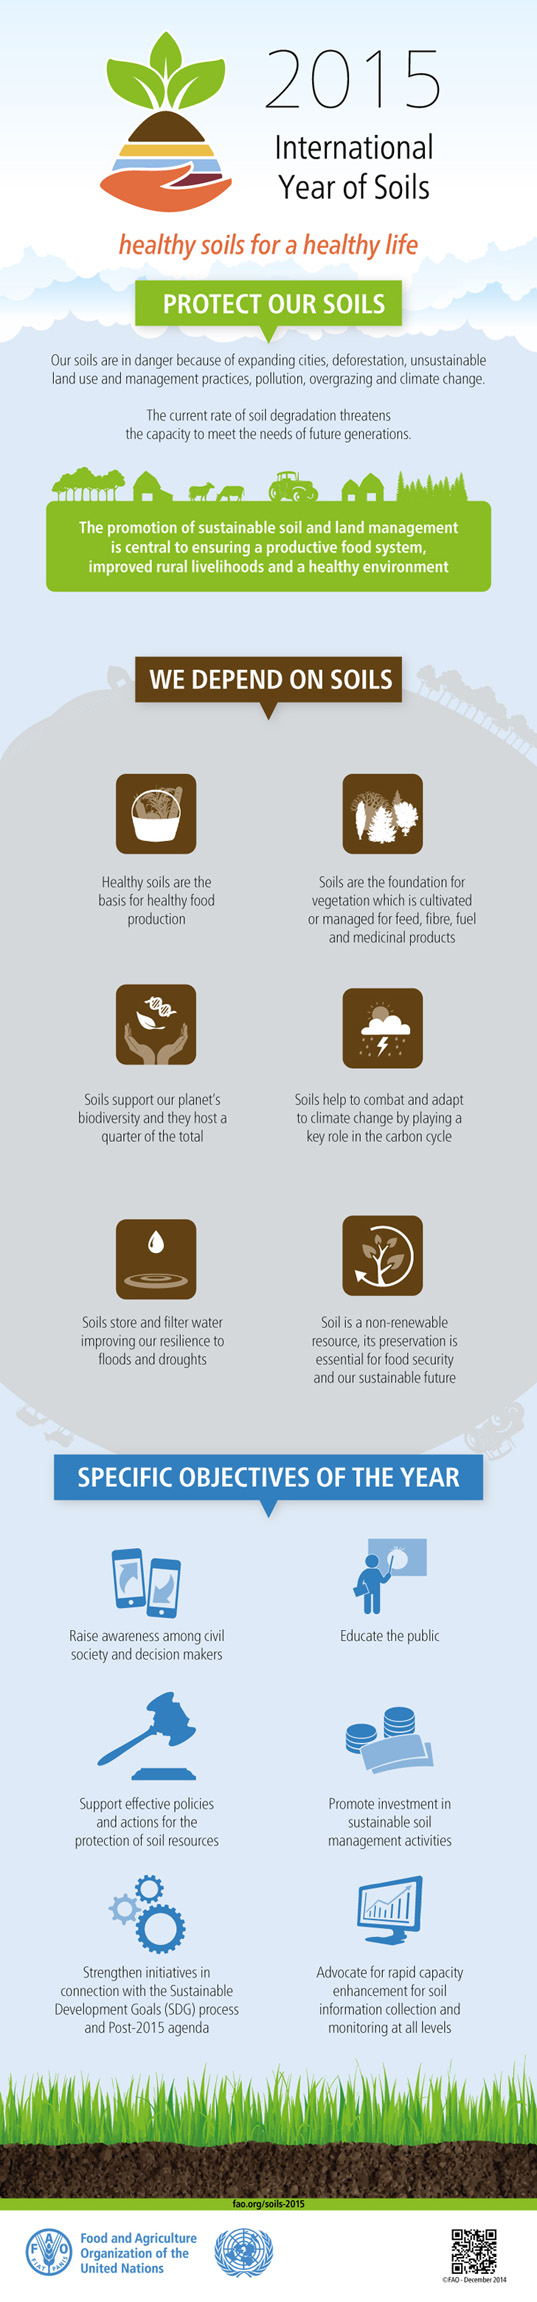 International Year of Soils Infographic